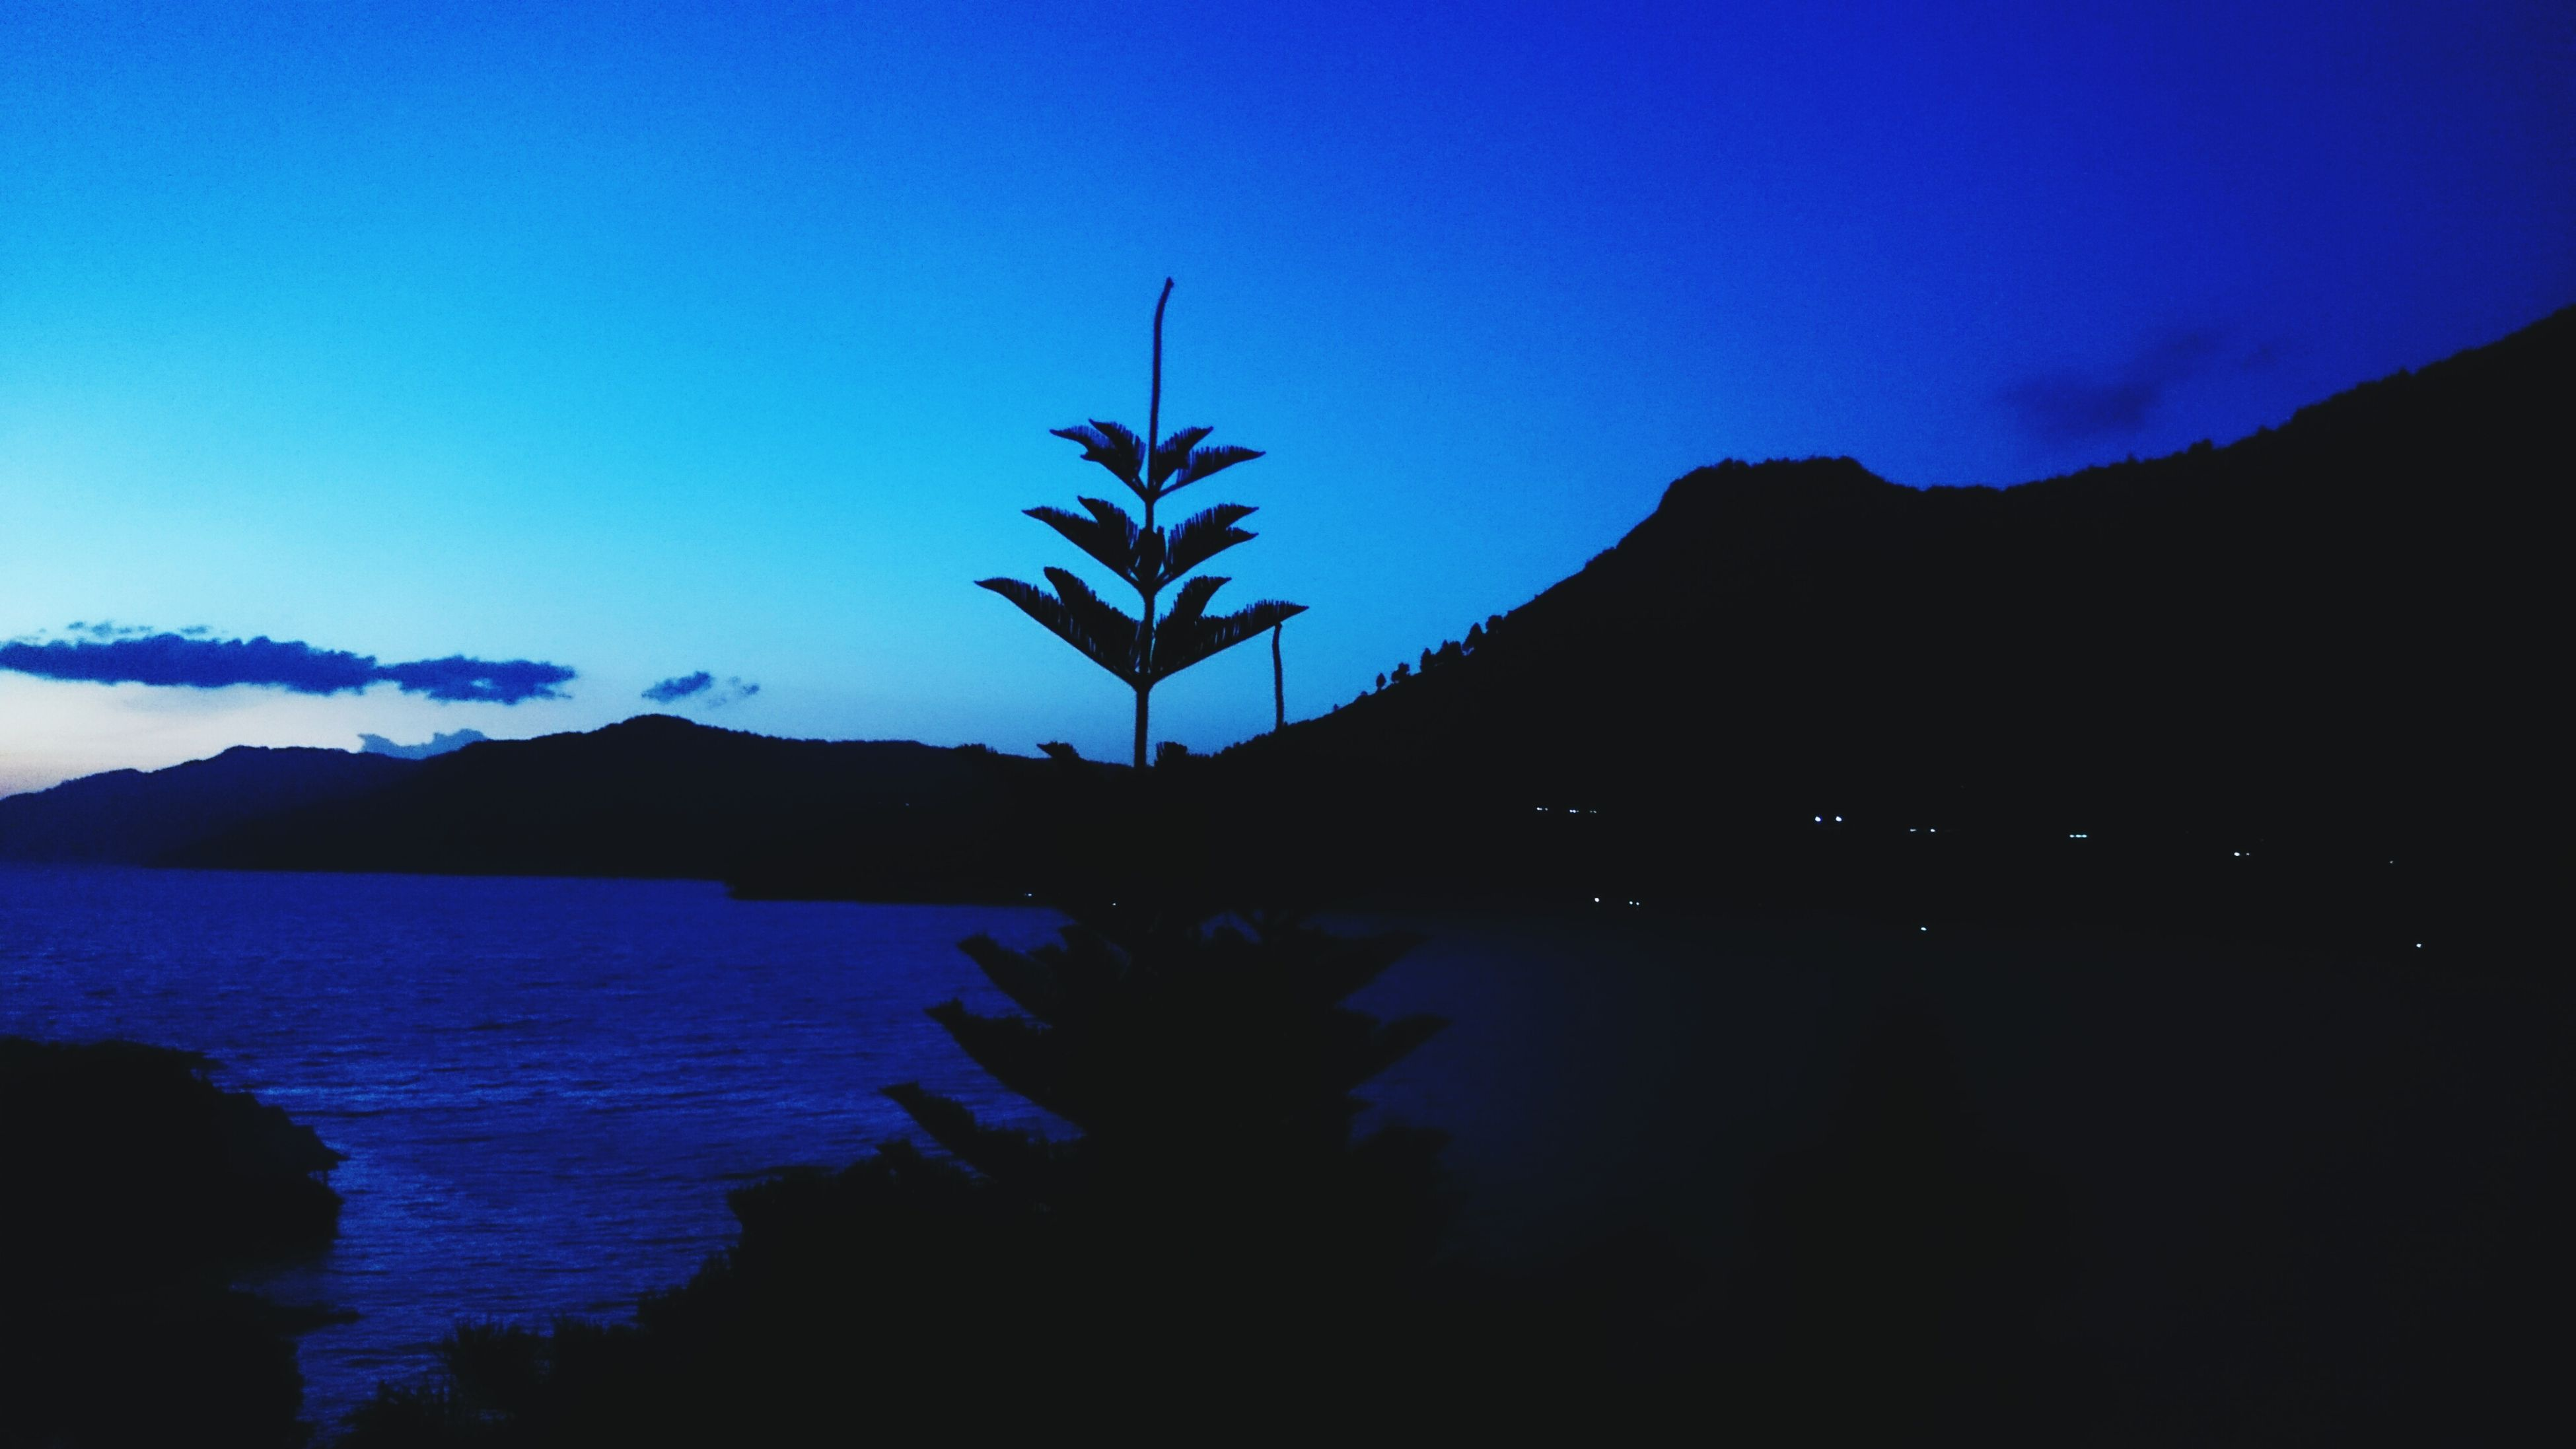 mountain, clear sky, tranquil scene, blue, tranquility, copy space, beauty in nature, scenics, nature, mountain range, water, lake, night, silhouette, dusk, tree, plant, idyllic, growth, sky